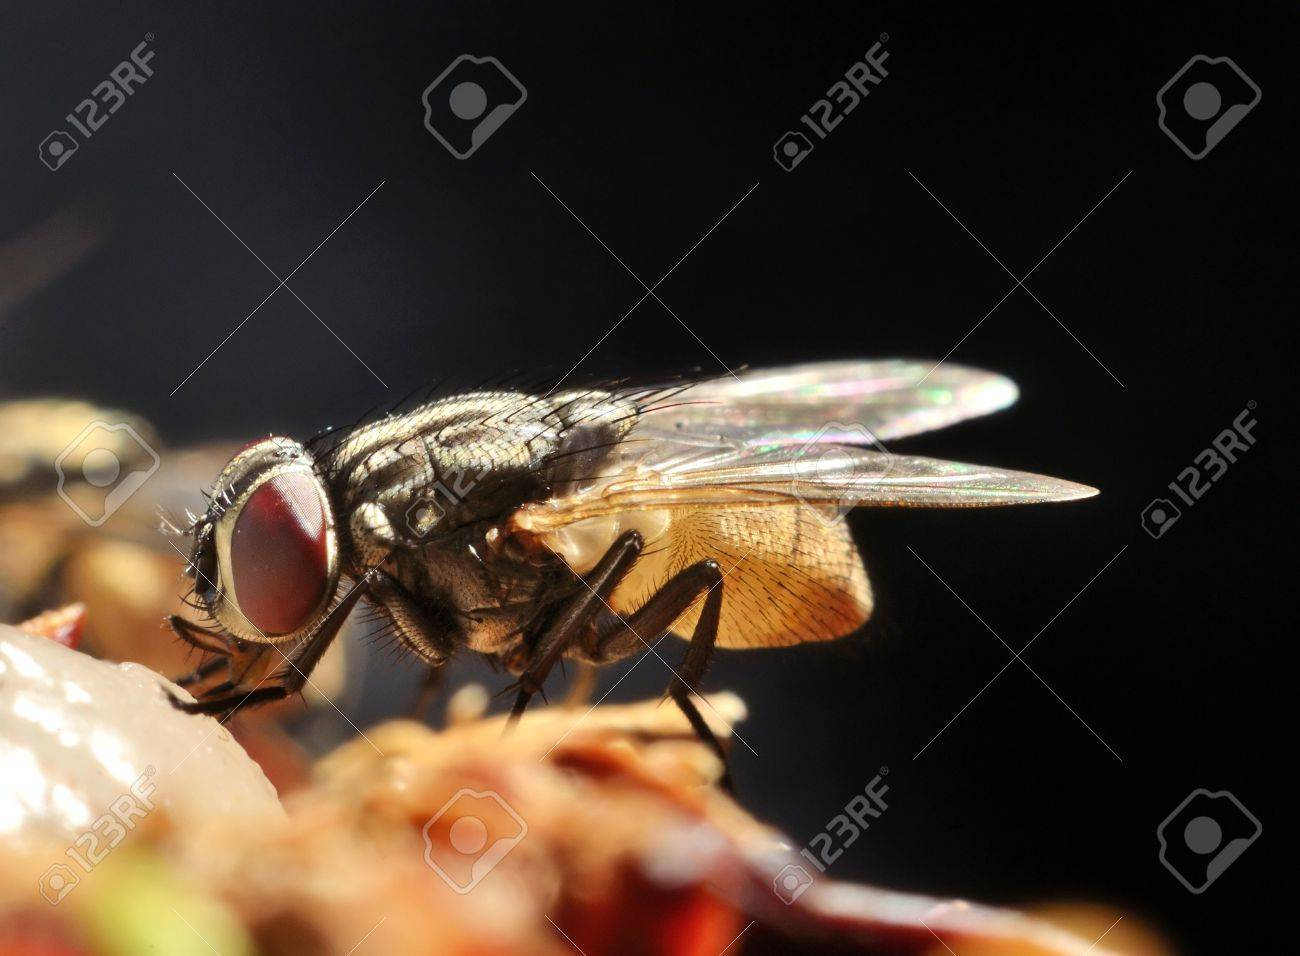 fly close up or macro with dark background Stock Photo - 15475887